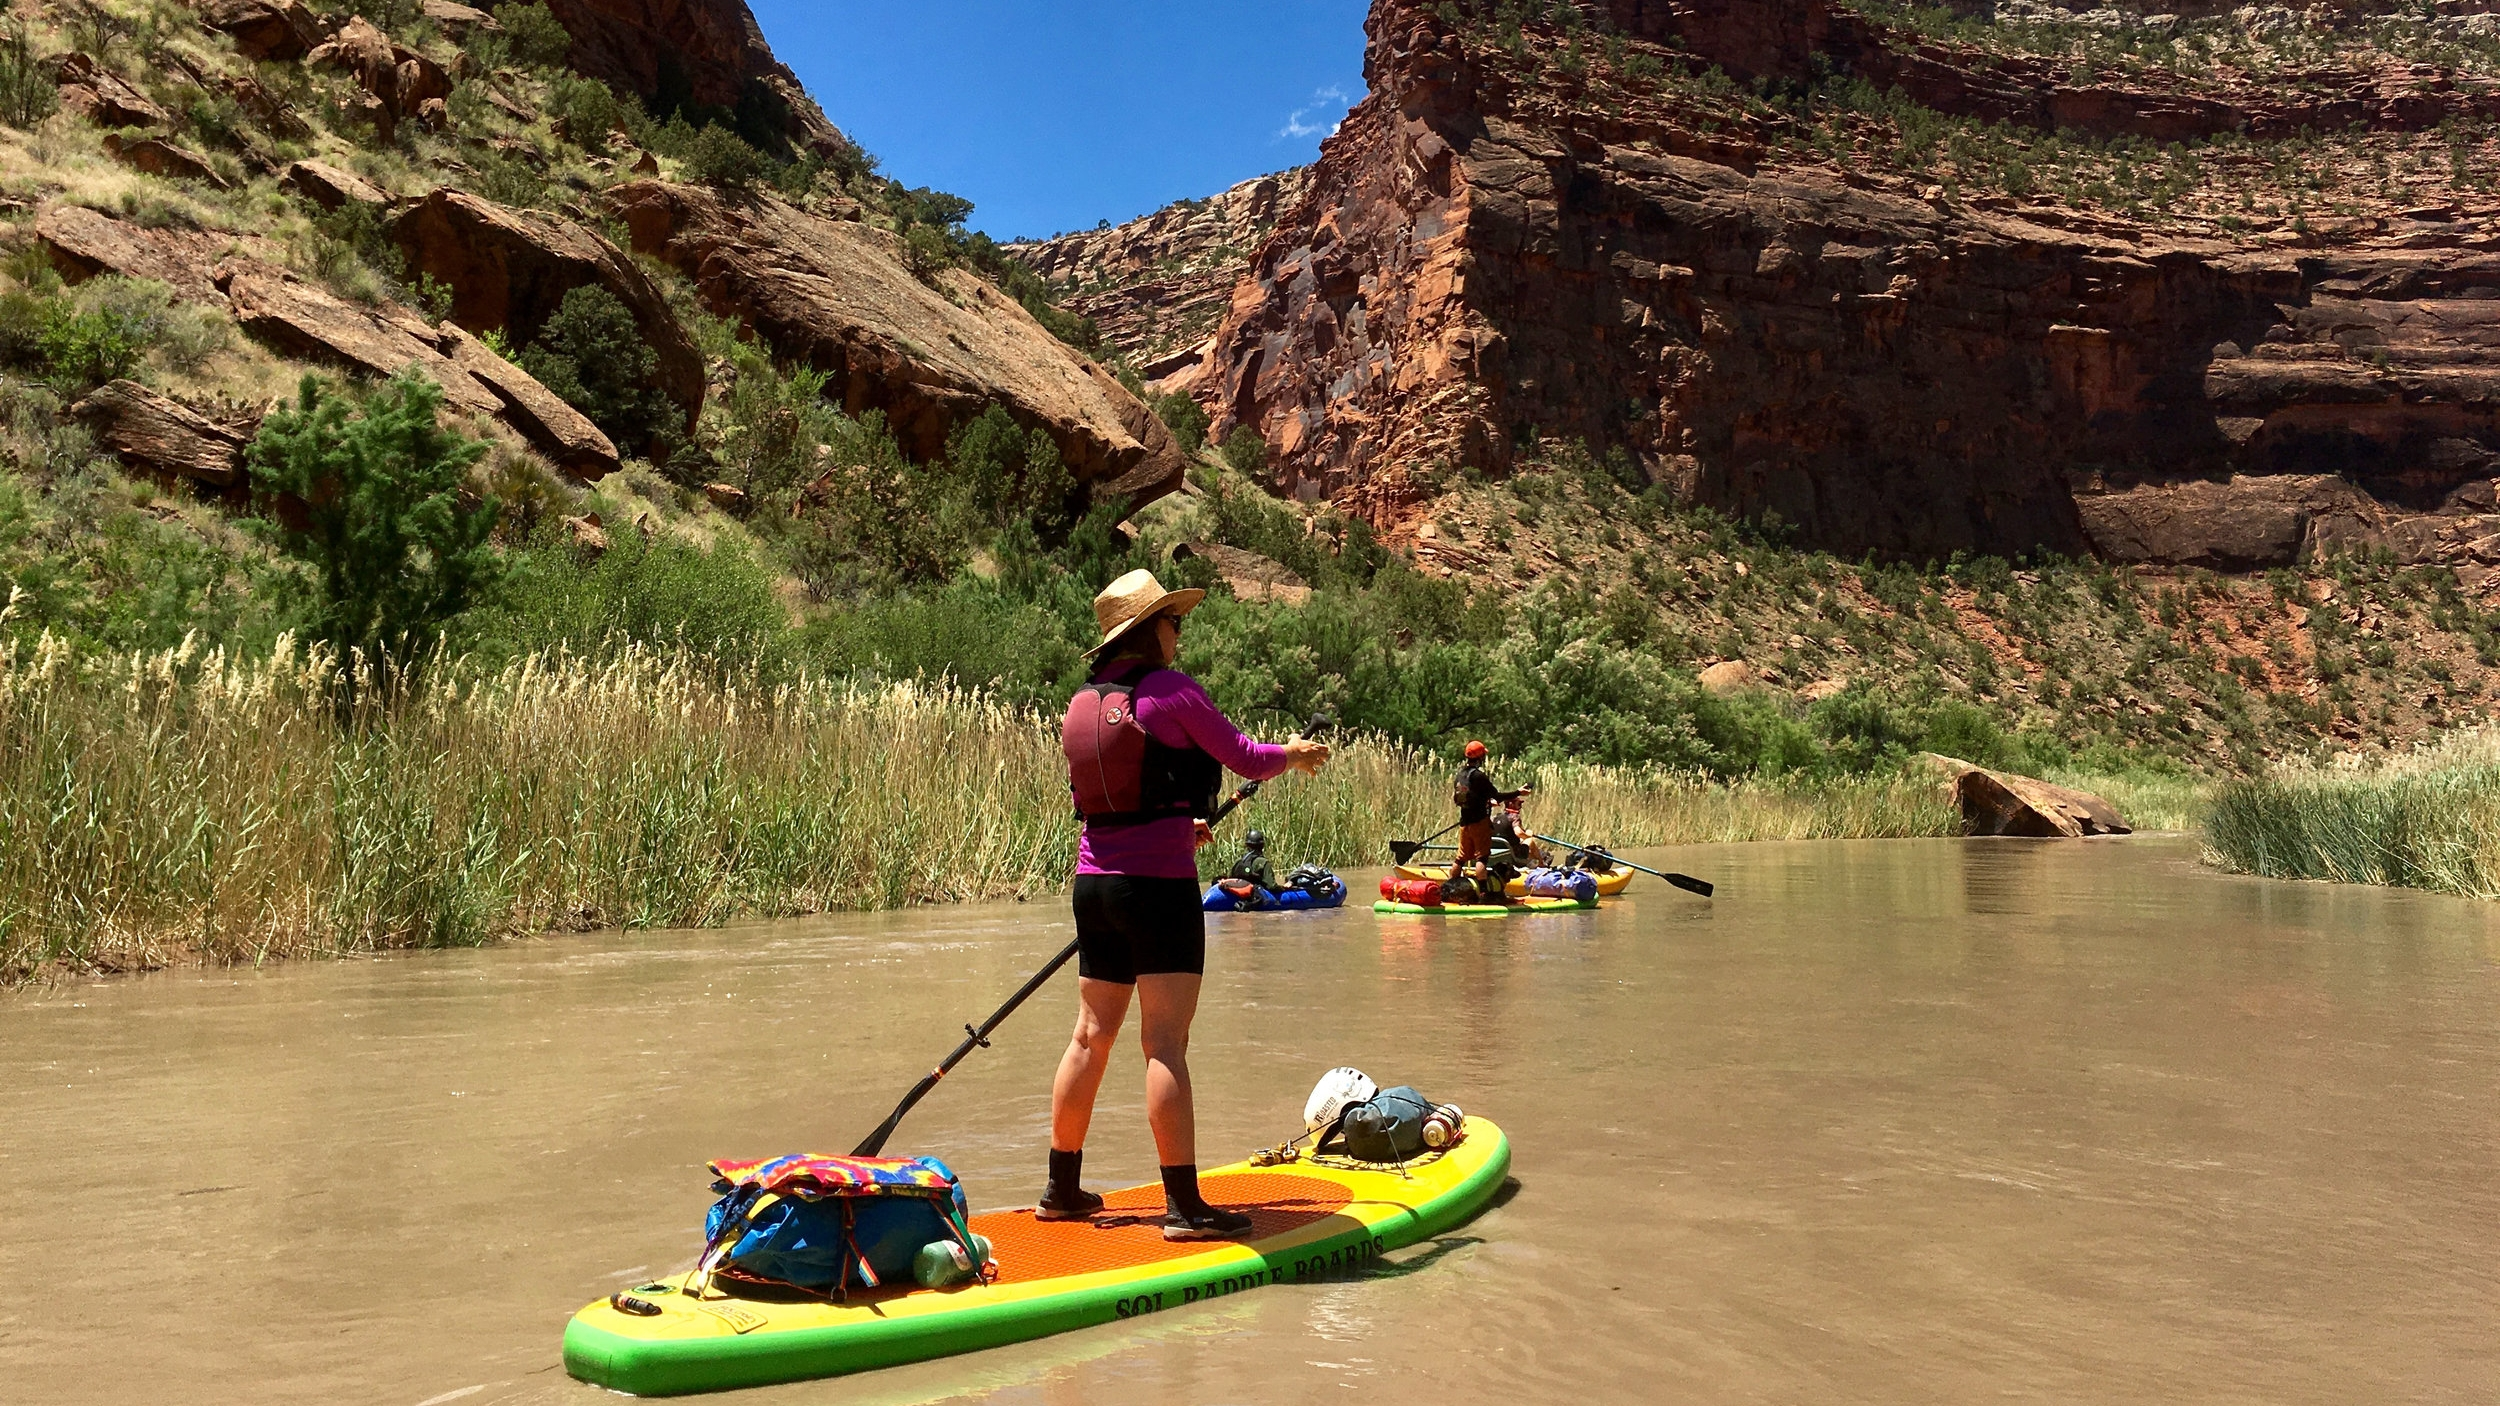 Self support stand up paddle board river trip on the Lower Dolores River in Southwest Colorado